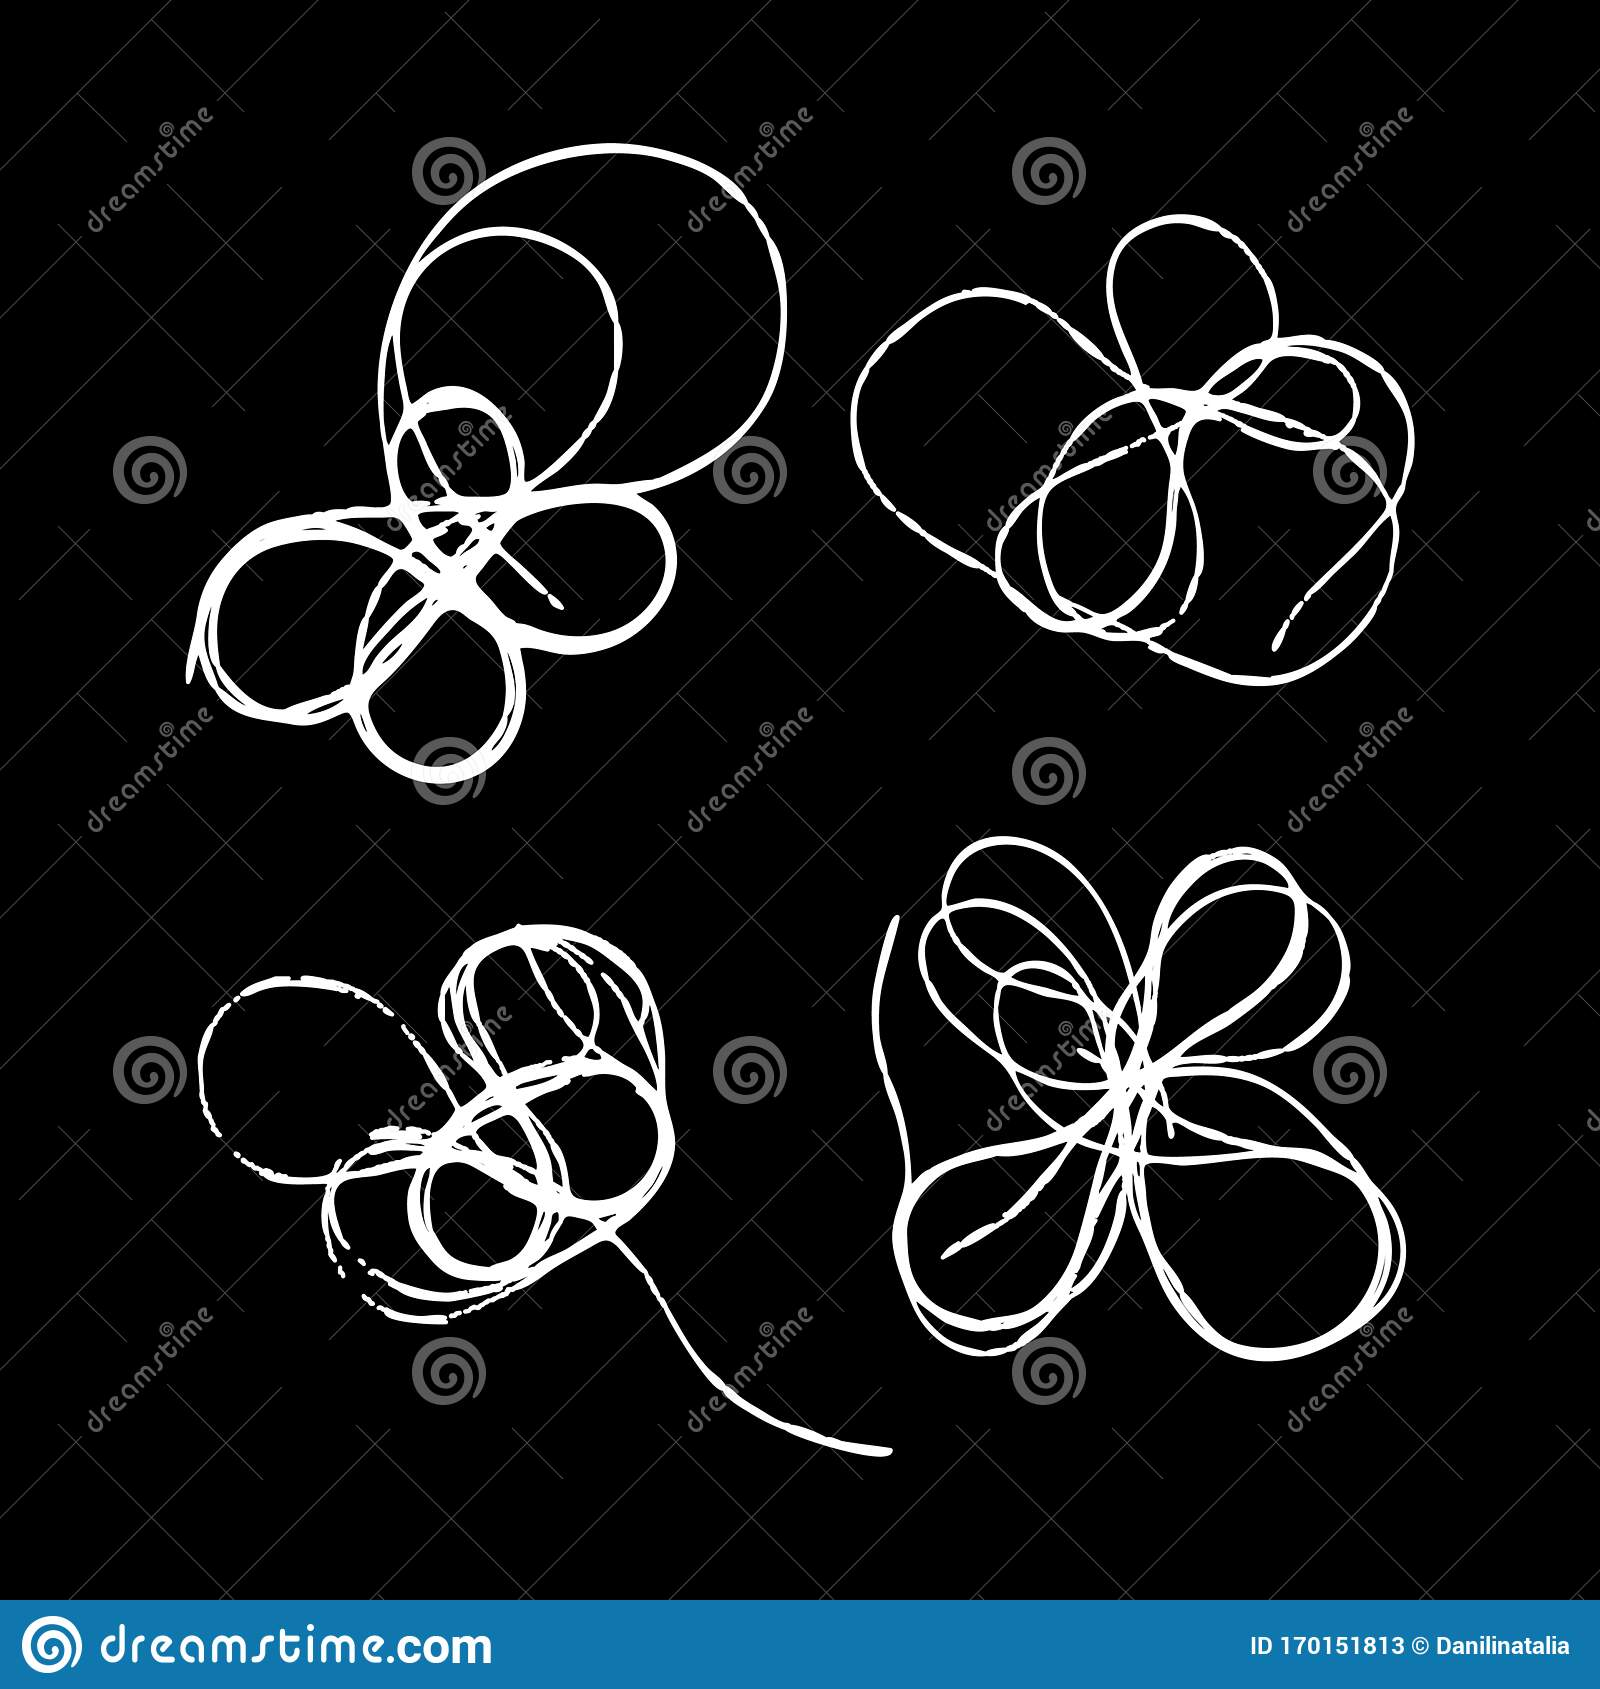 Set Of Tangled Threads Thread Scribble Petals Flower Spot Outline Abstract Sketch Chaotic Doodle Shapes Eps 10 Stock Vector Illustration Of Chaotic Grunge 170151813